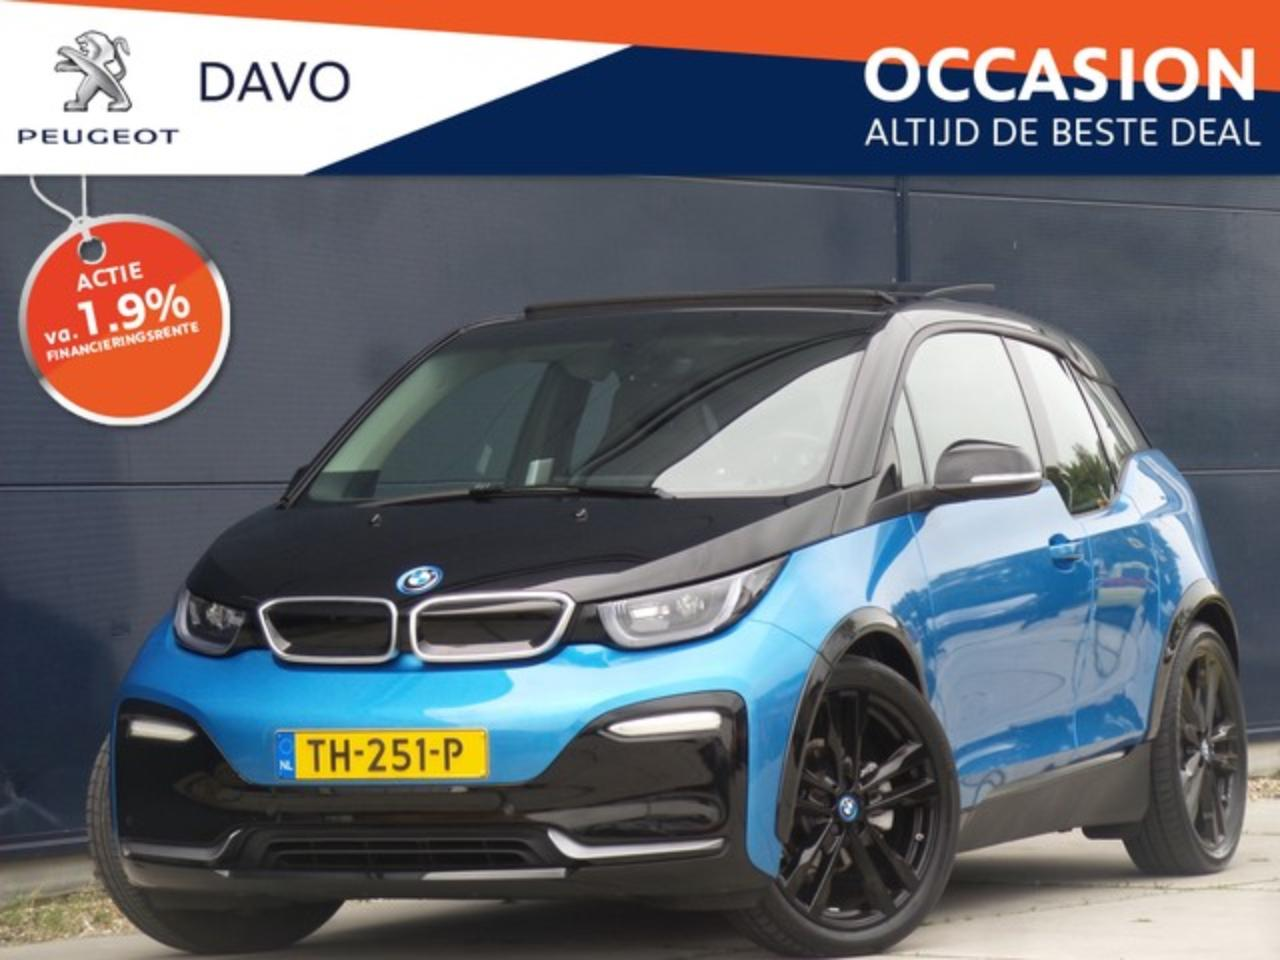 Bmw i3 S iPerformance 94Ah 33 kWh Panorama I Leder I Came